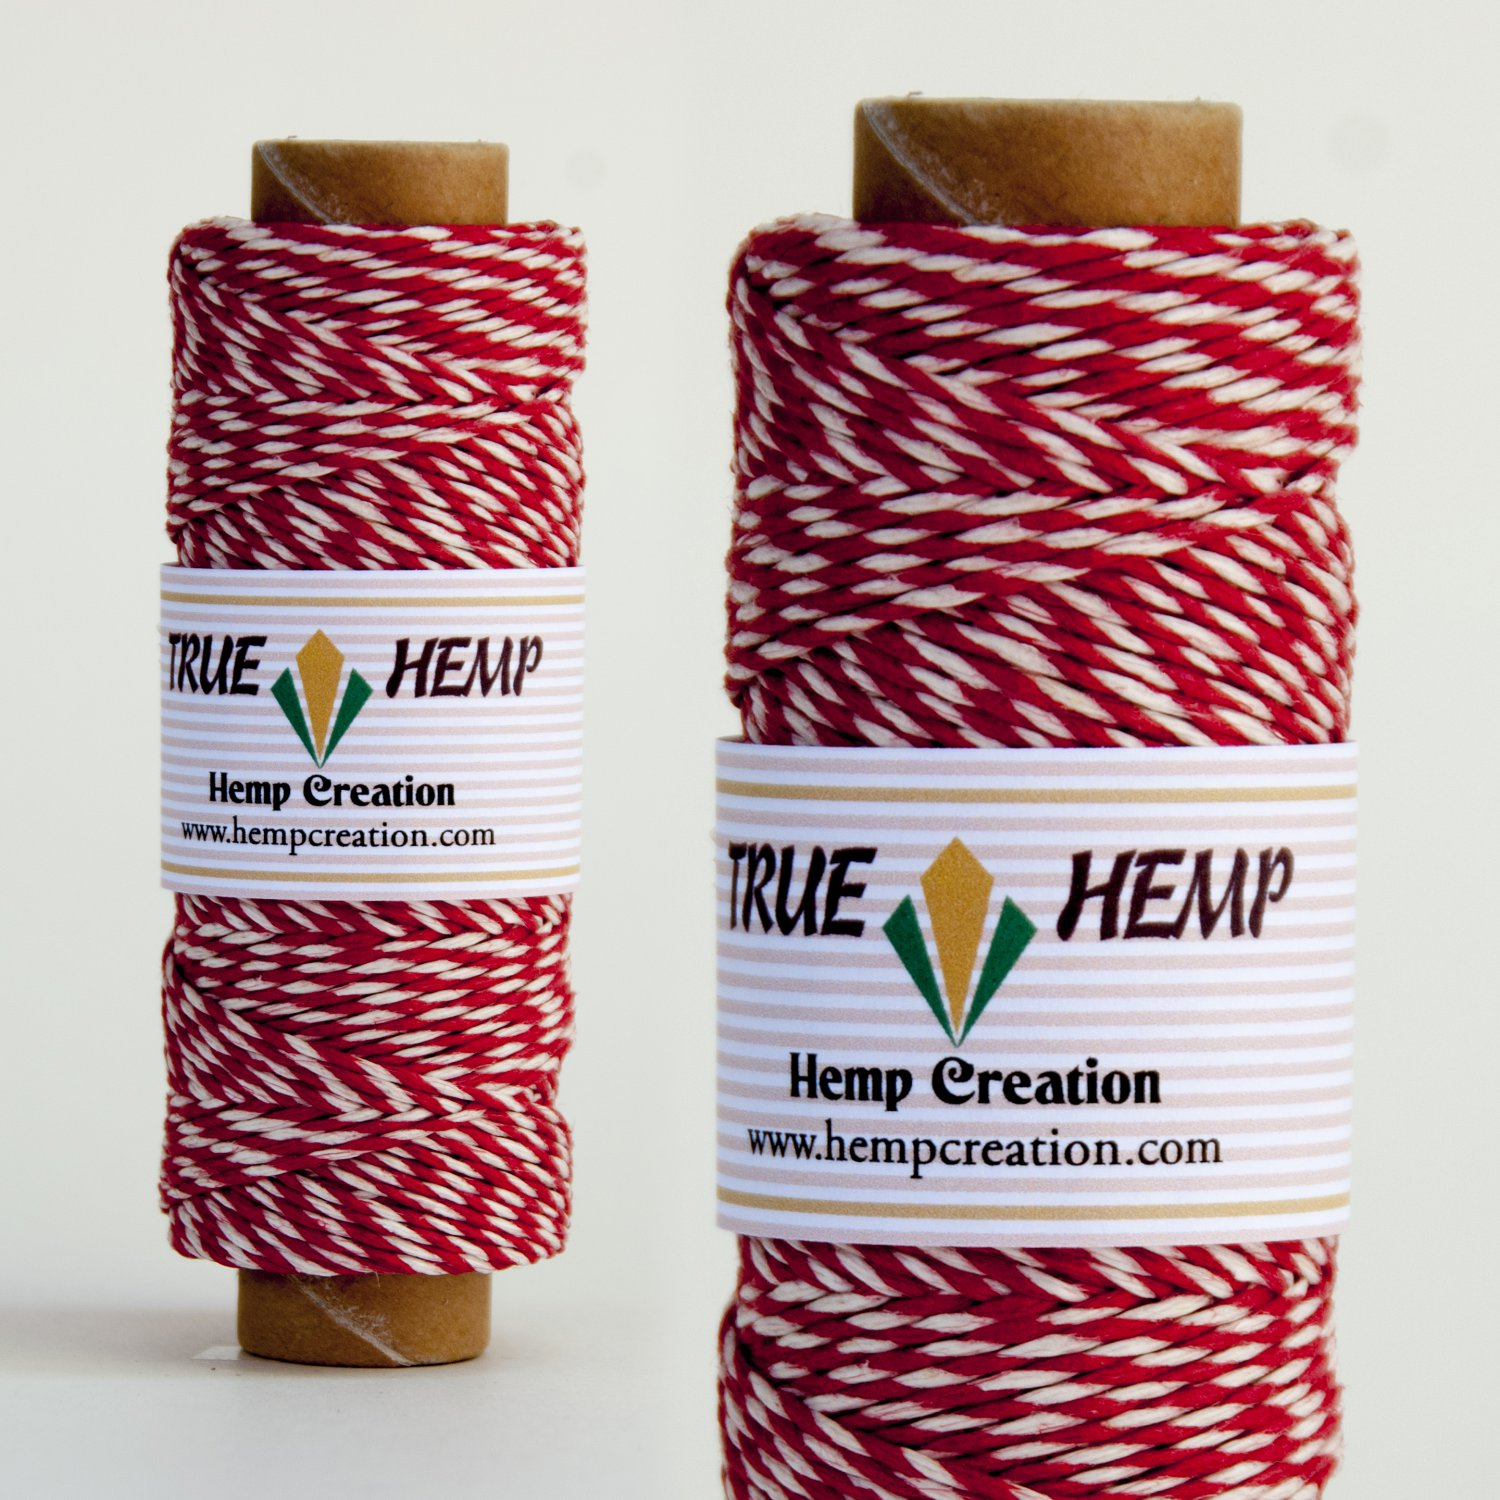 True Hemp cord PAIR TWINE RED/WHITE - 1mm diameter 20lb - 205feet / 62m / 50gram per spool